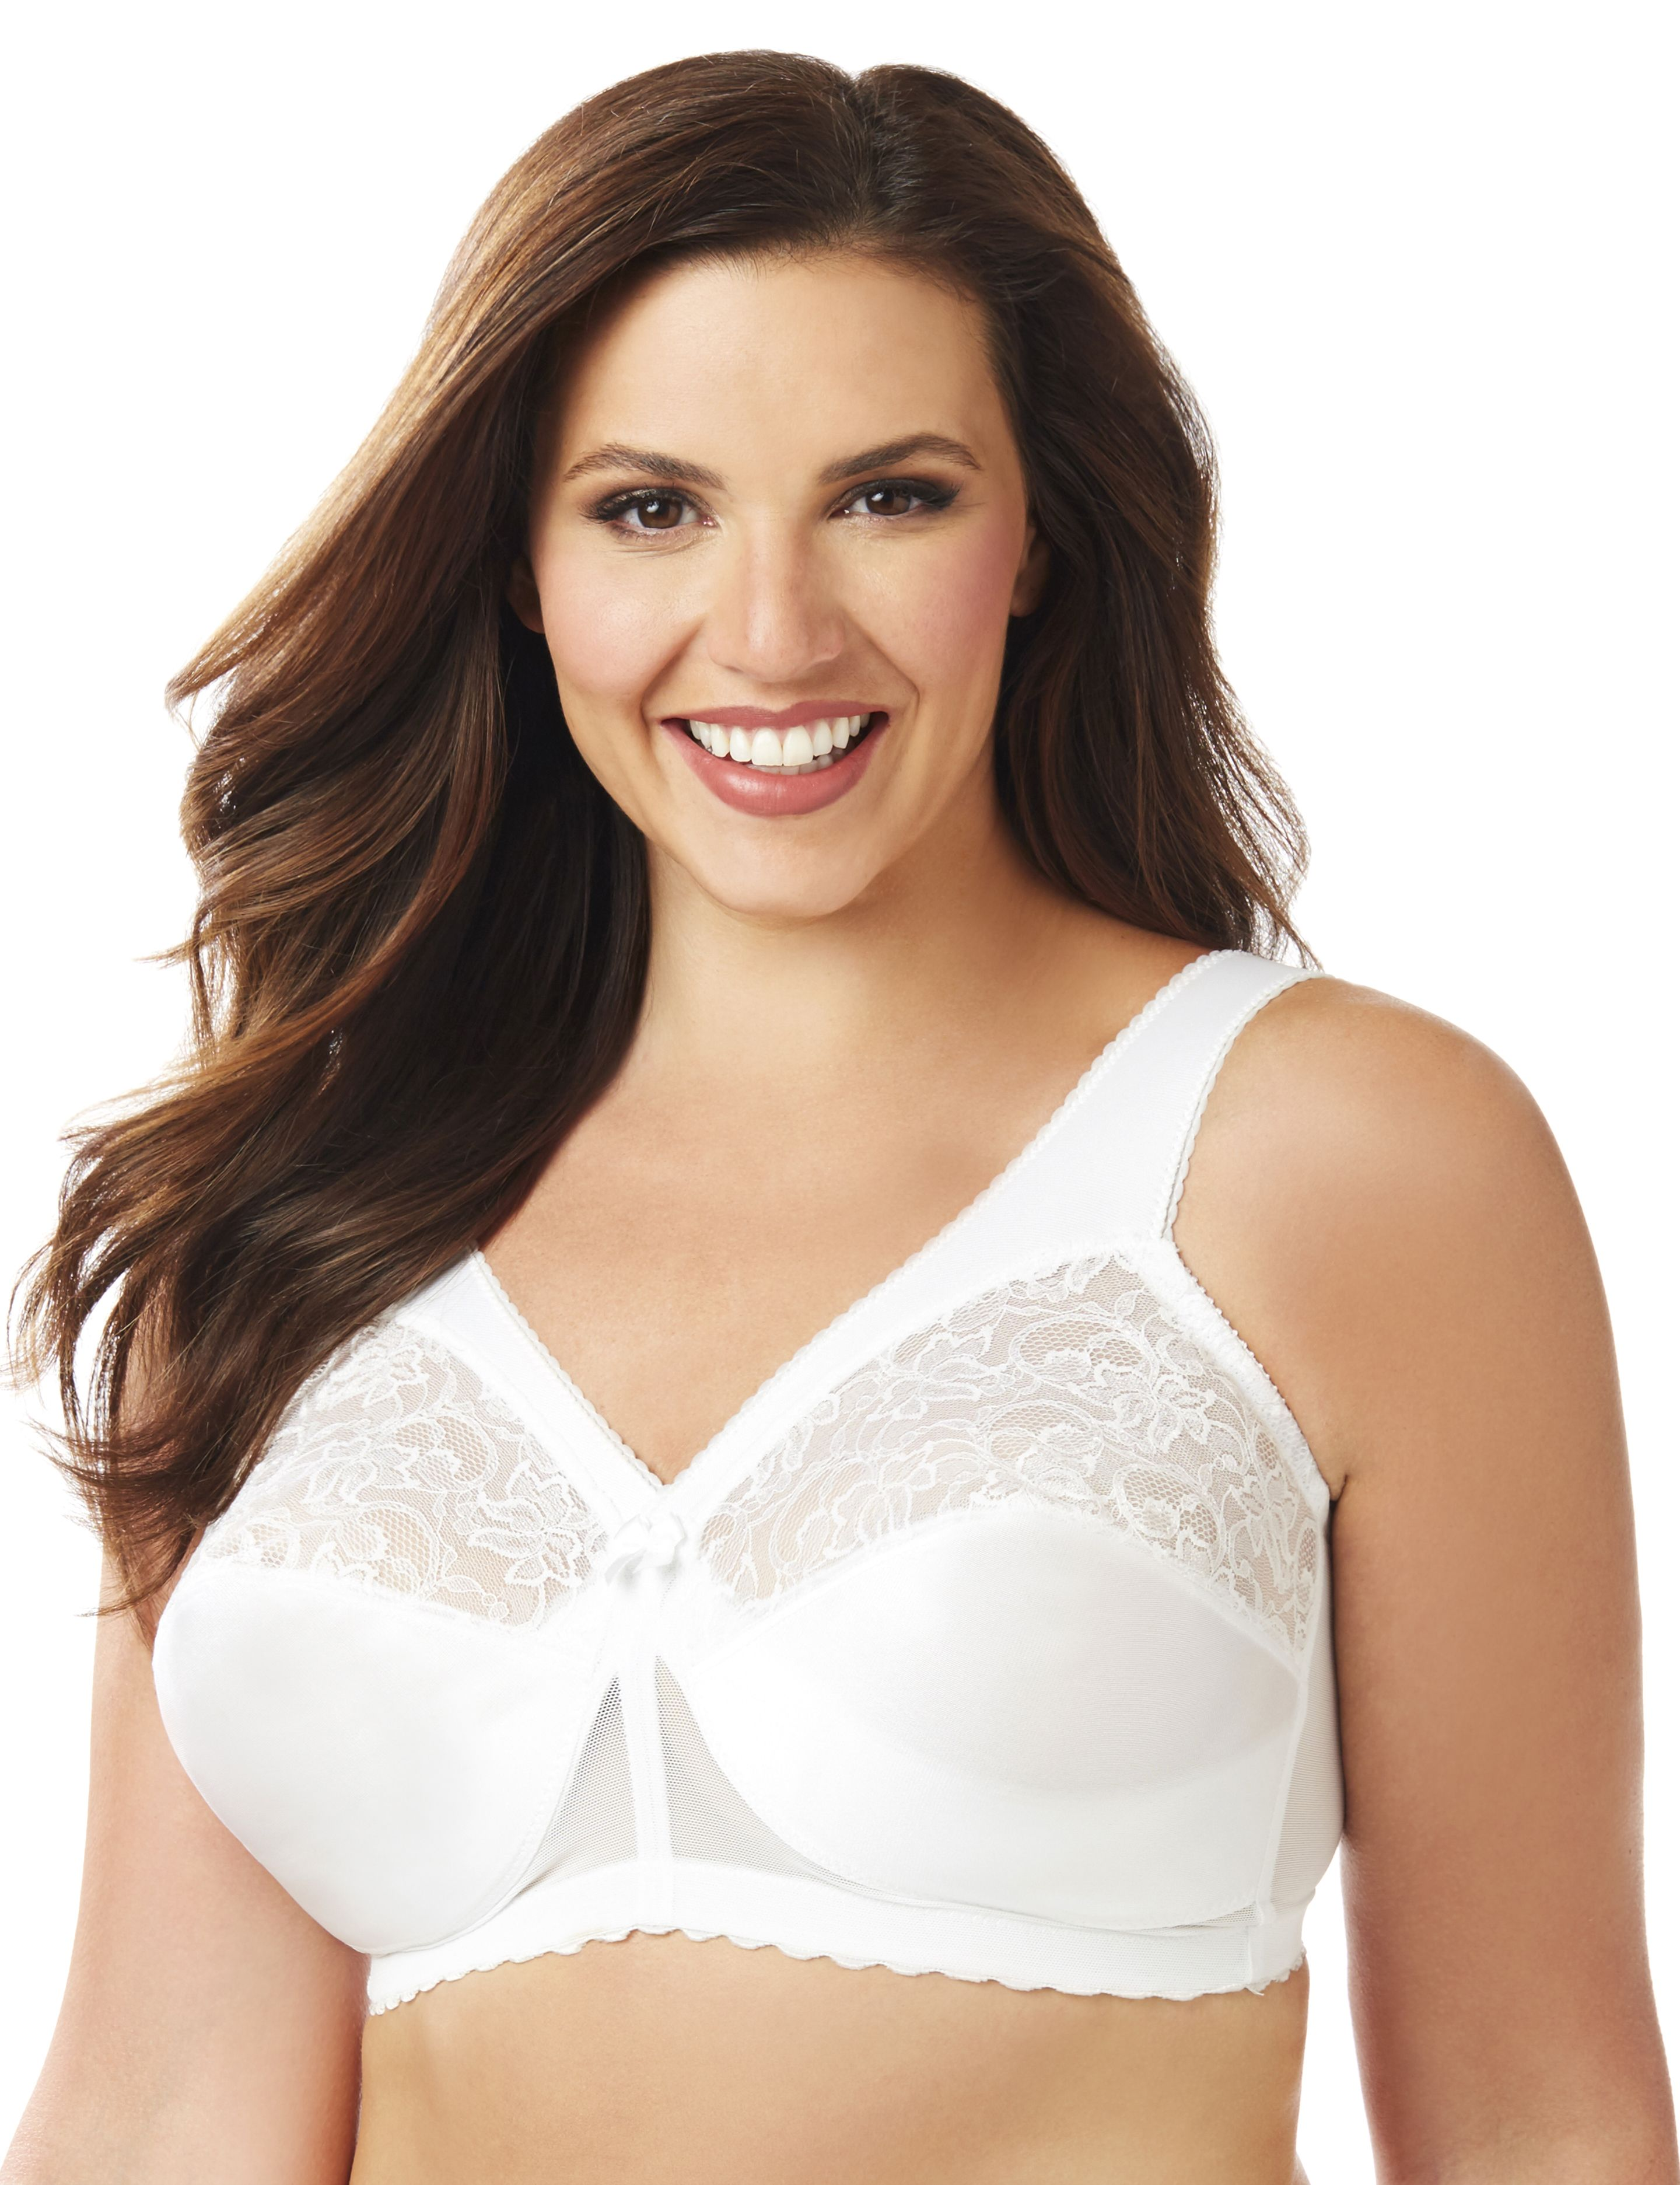 Glamorise 1000 Magic Lift No-Wire Bra Glamorise 1000 Magic Lift No-Wire Bra MP-000156831